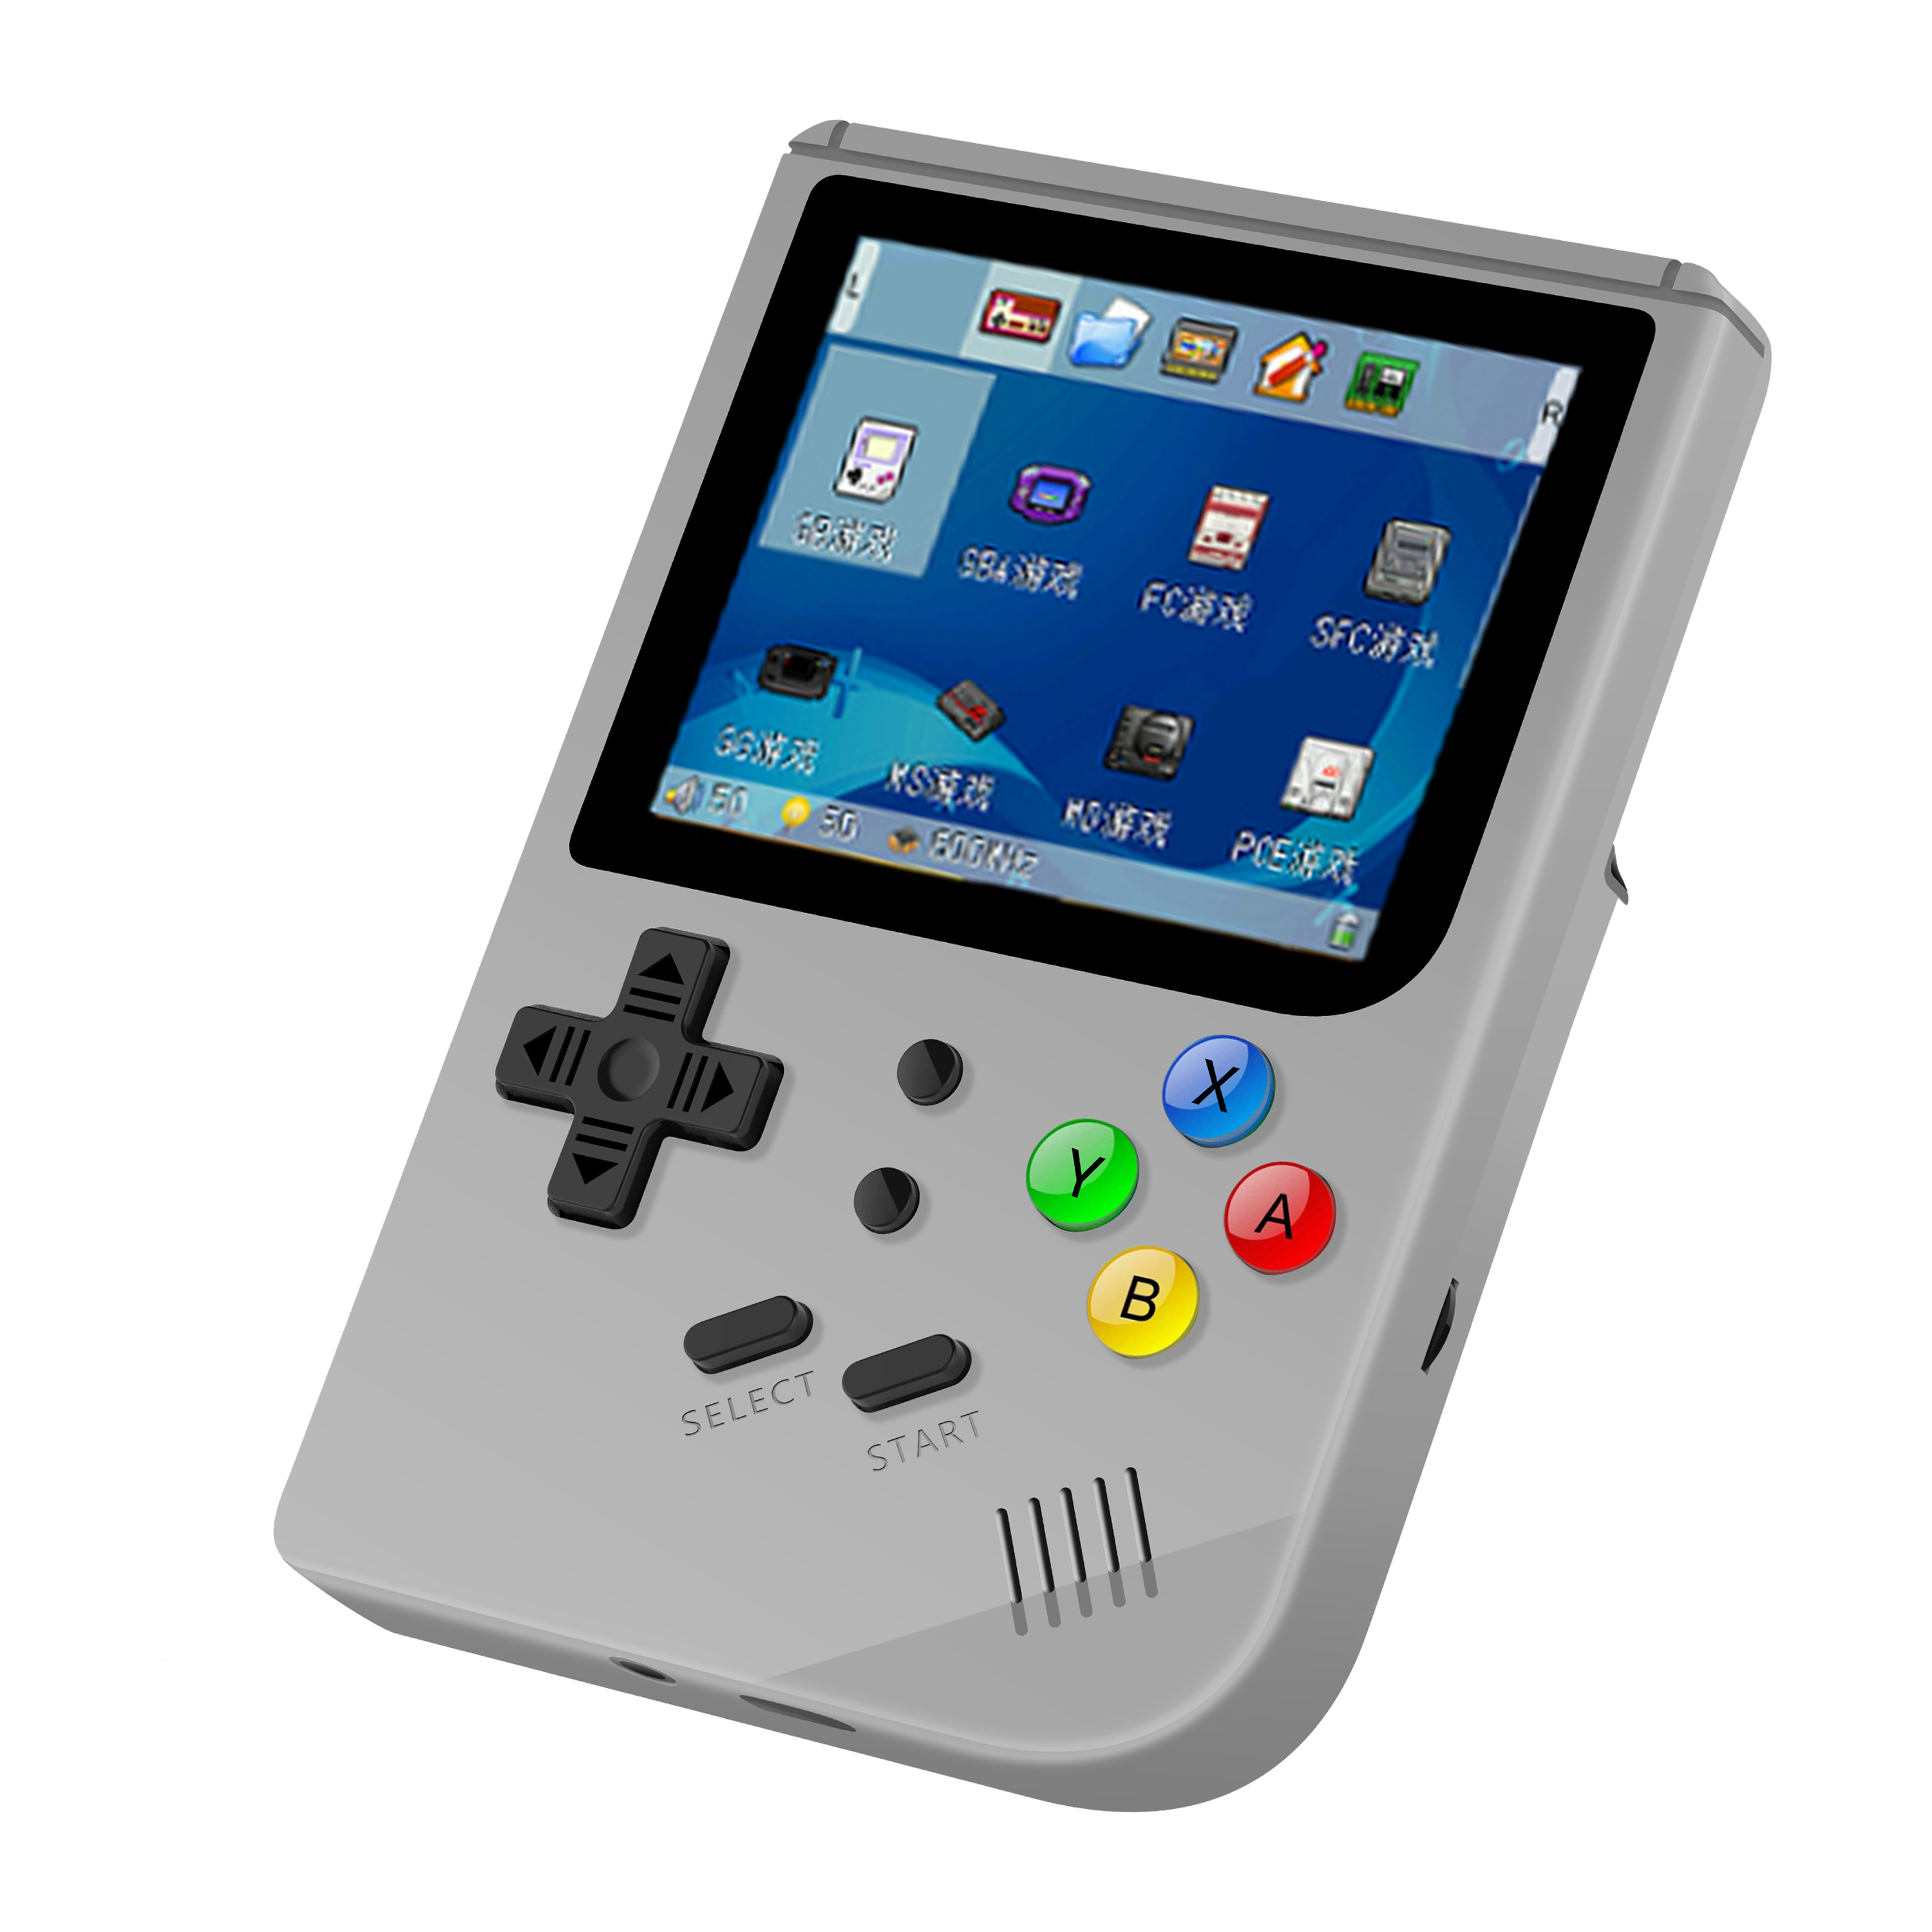 New Retro Game 300, RG300,16G internal, 3inch portable video game console,Tony system retro handheld game player